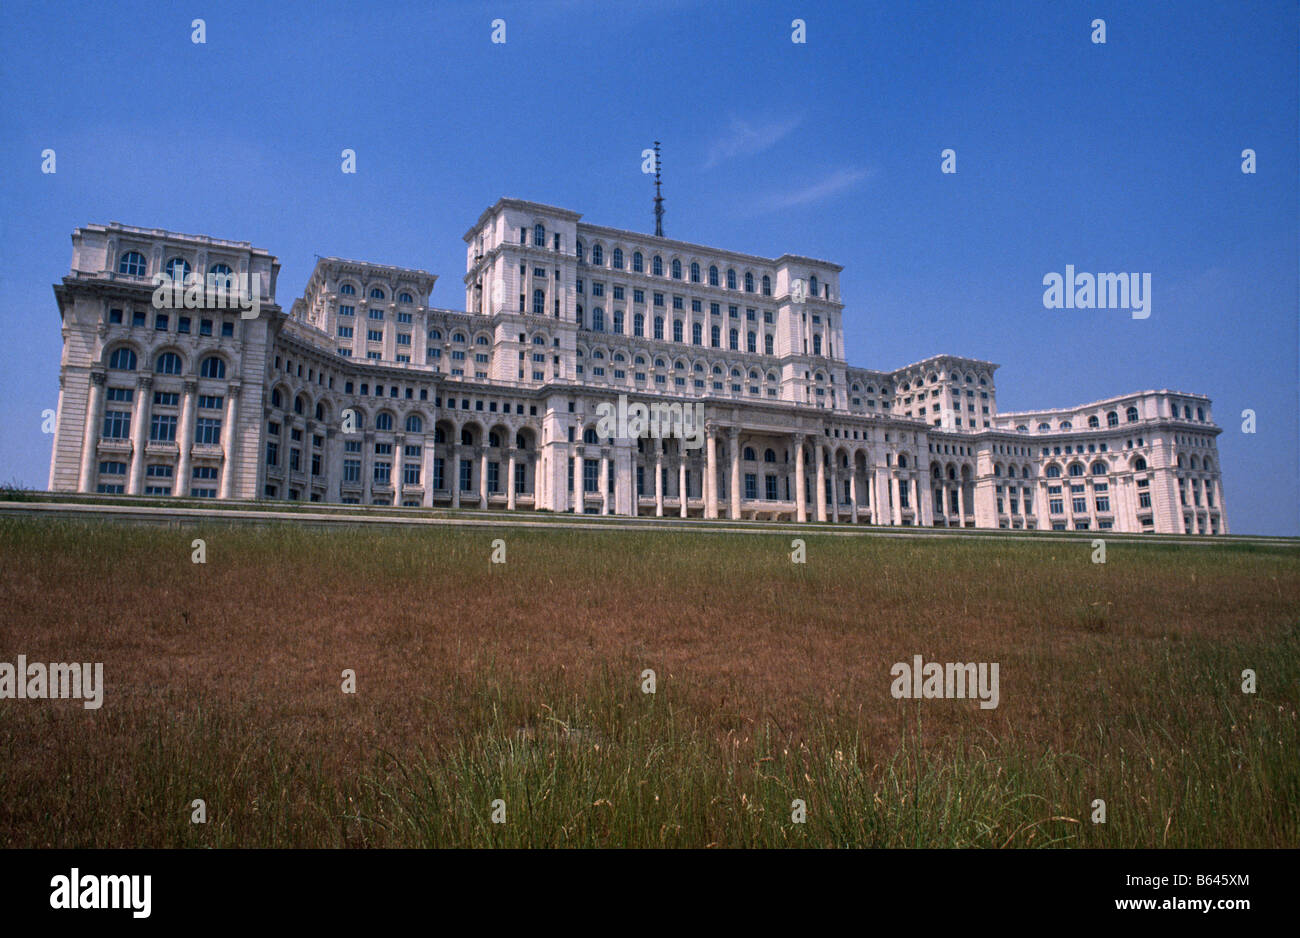 The House/ Palace of The People, otherwise known as Ceaucescu's Palace, at the end of Boulevard Unirii, Bucharest, - Stock Image